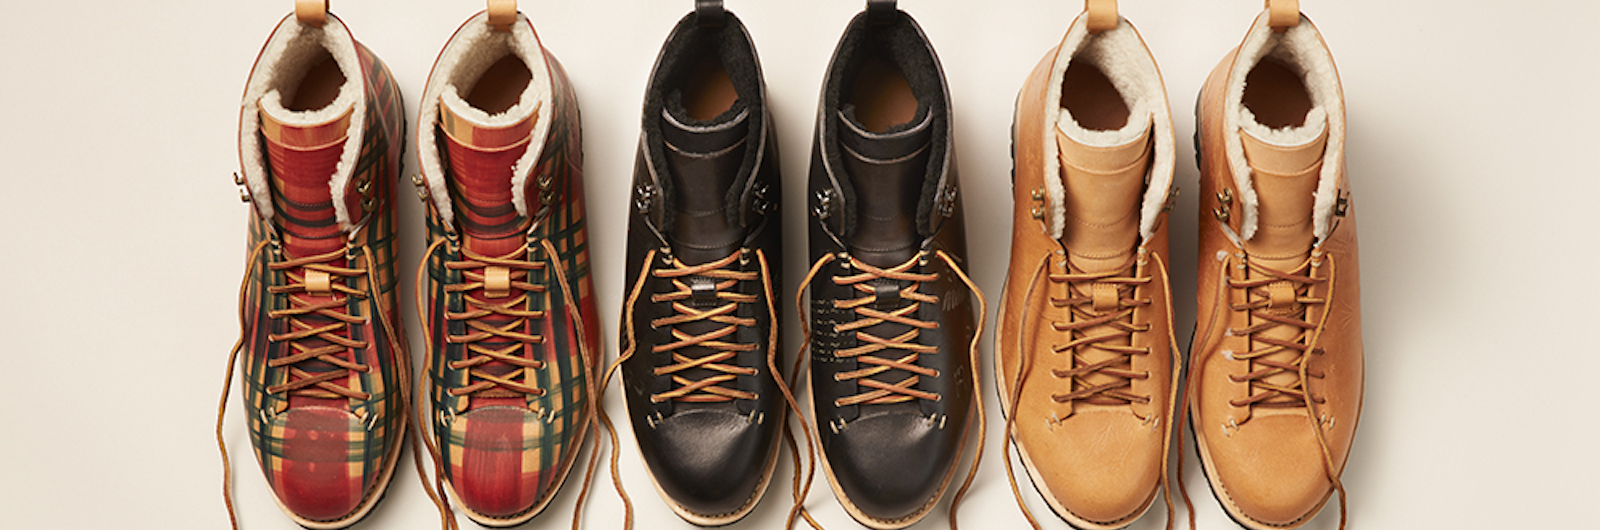 These Works of Art are Boots